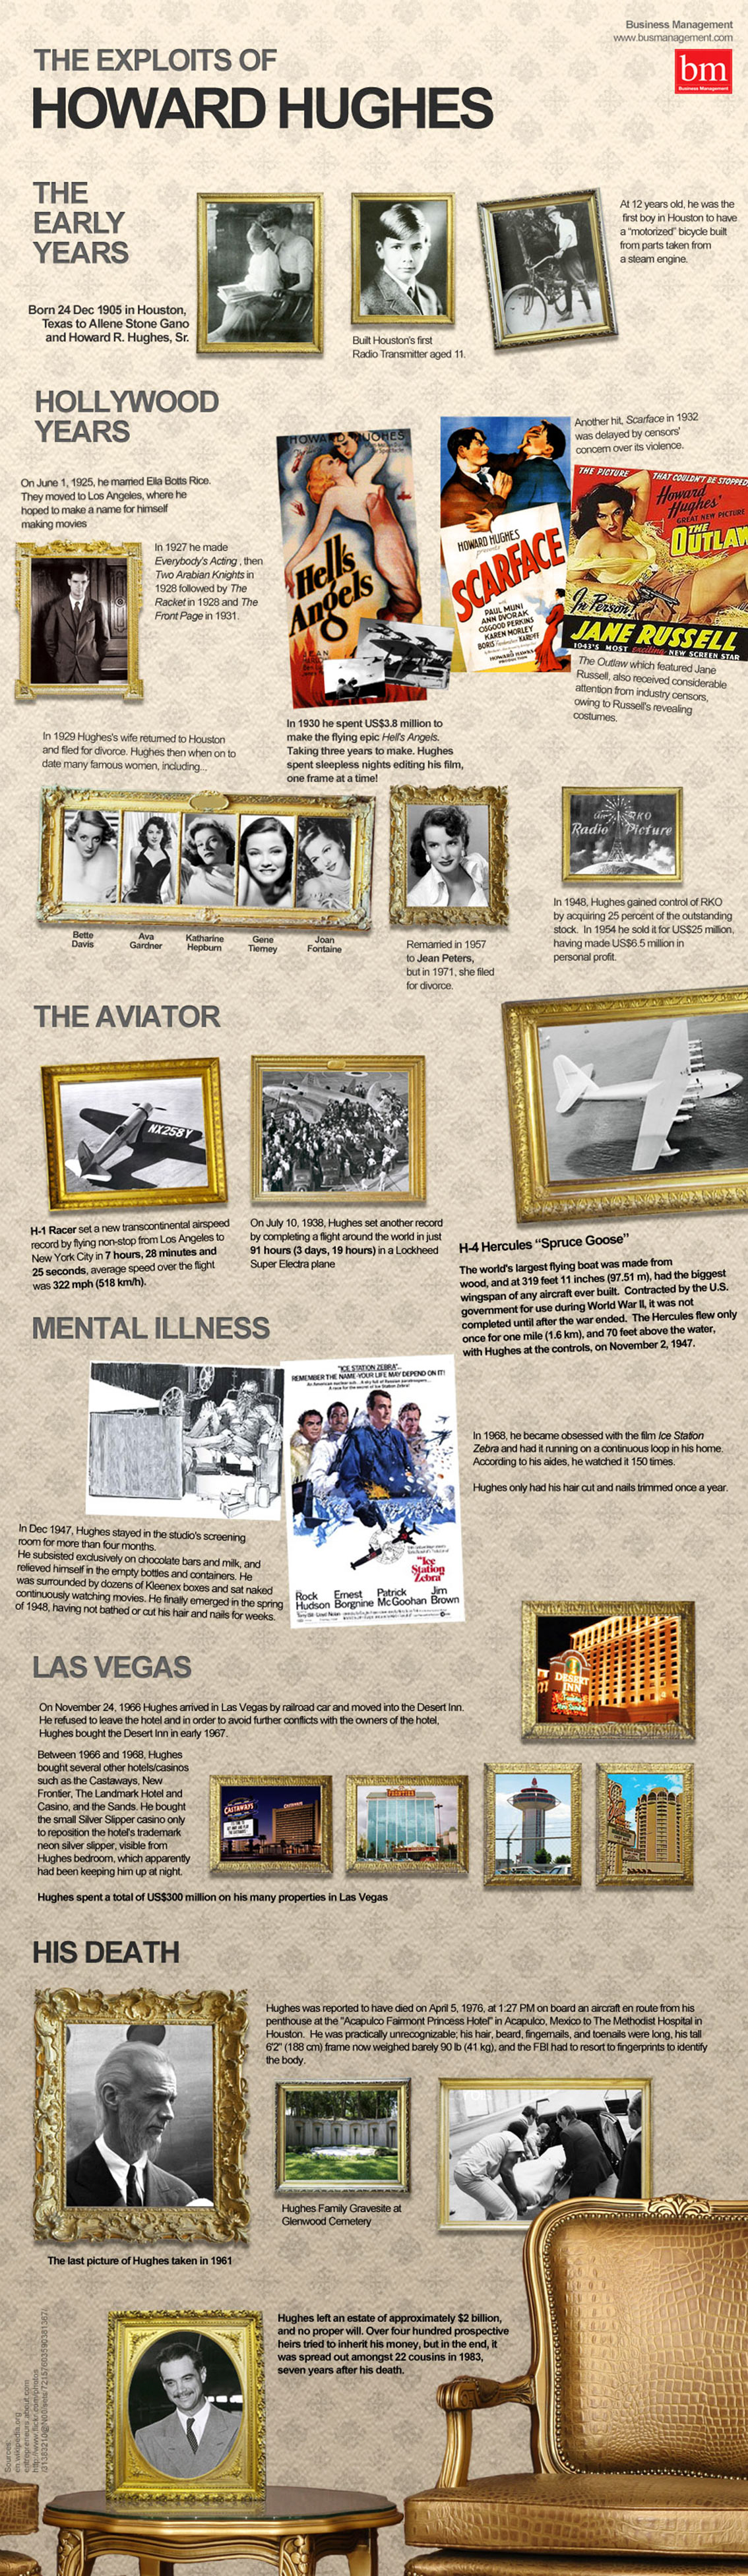 Biography of Howard Hughes Infographic